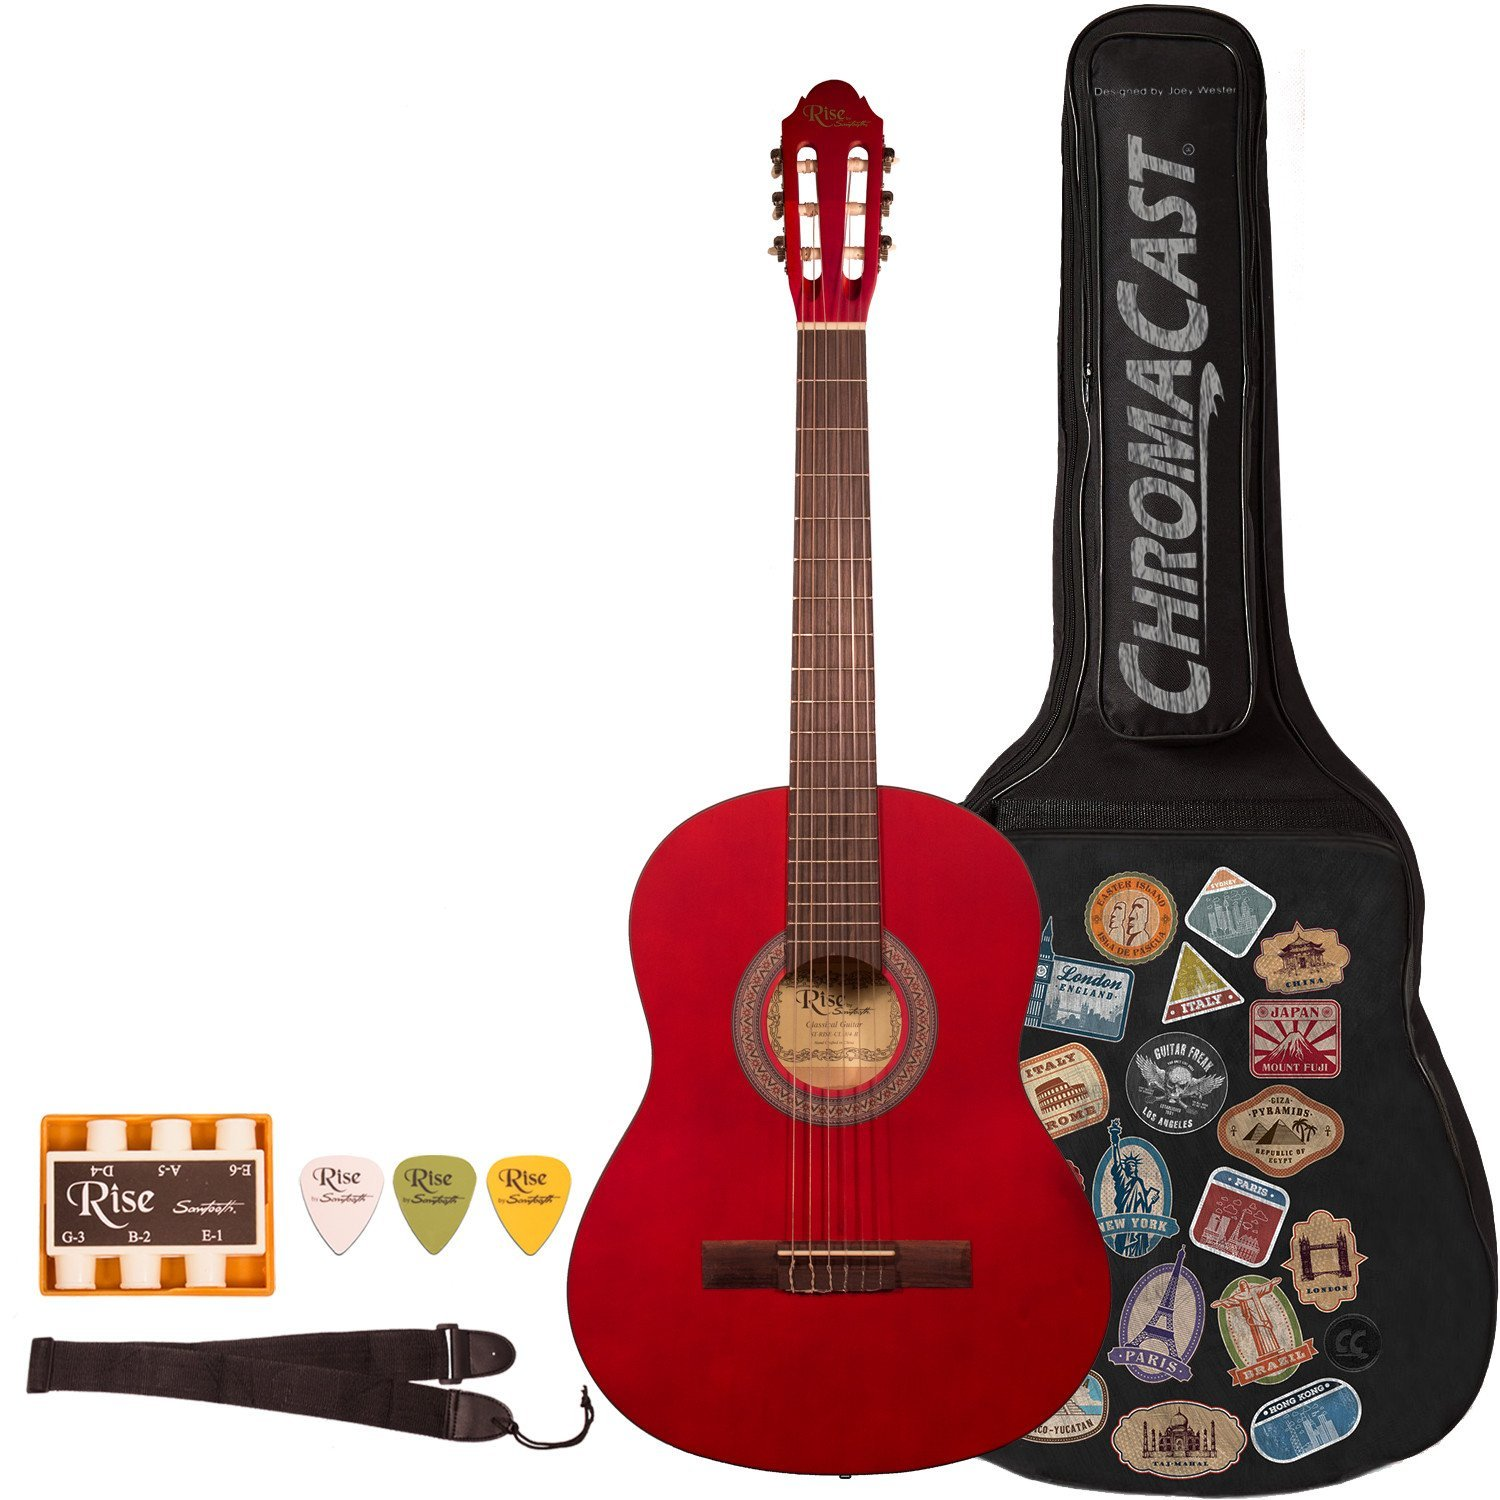 Rise by Sawtooth 3/4 Size Beginner's Acoustic Guitar with World Tour Graphic Gig Bag and Accessories, Satin Red Stain